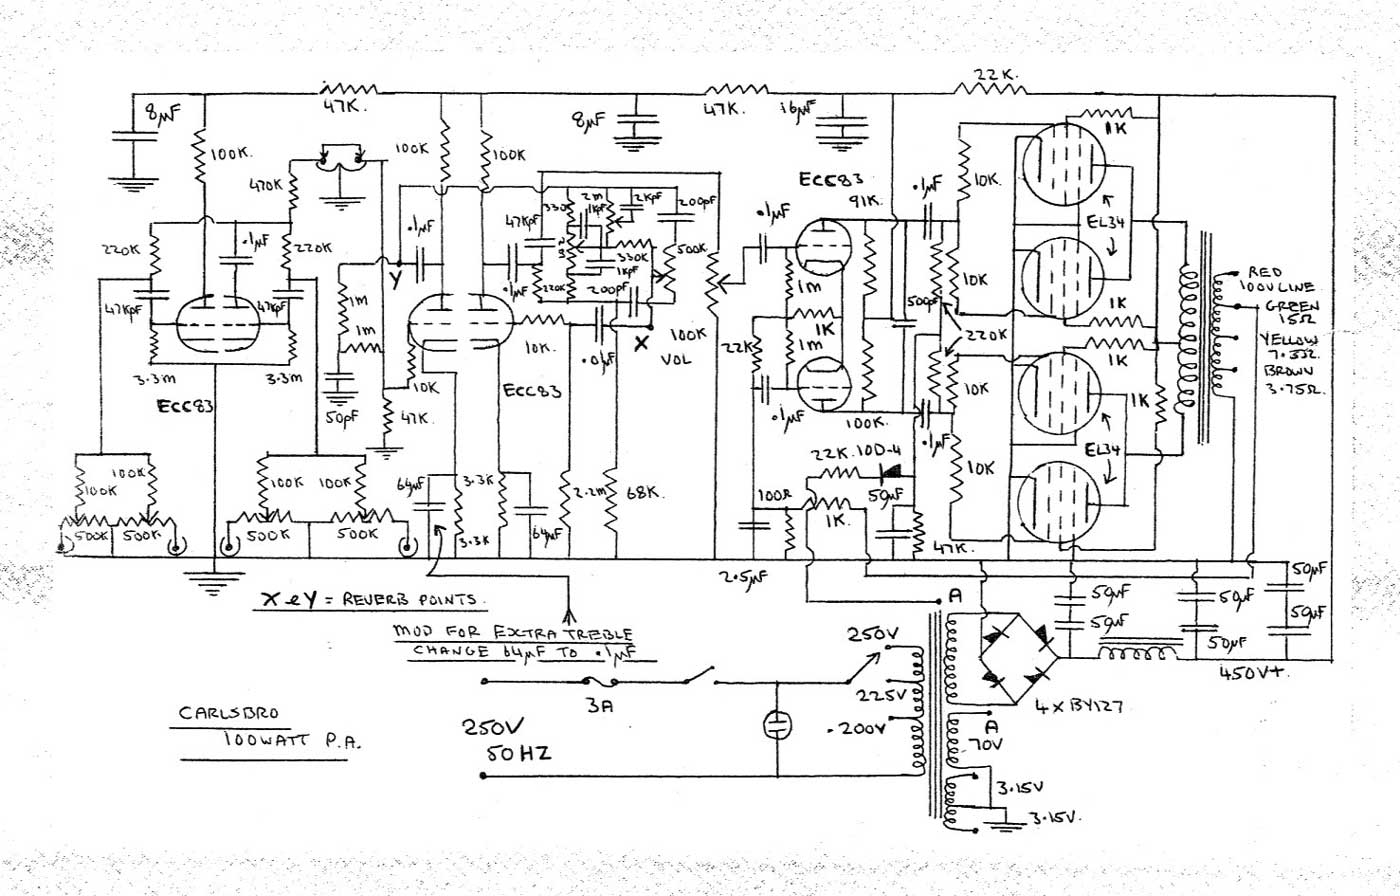 Central Vac Wiring Diagram Example Electrical Beam Vacuum Pa 300 Speaker Odicis Low Voltage